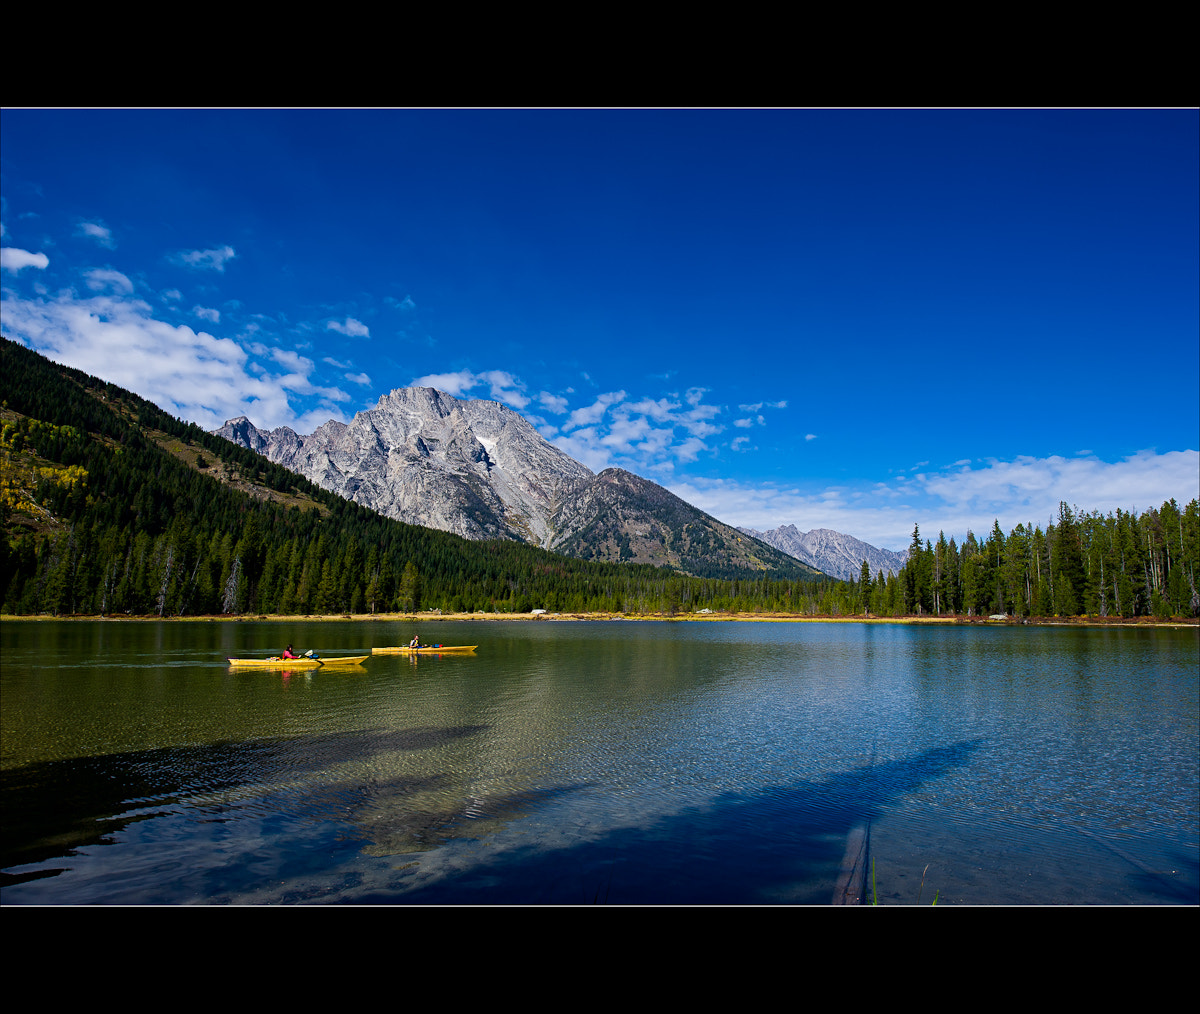 Photograph String Lake Kayakers by Wil Bloodworth on 500px